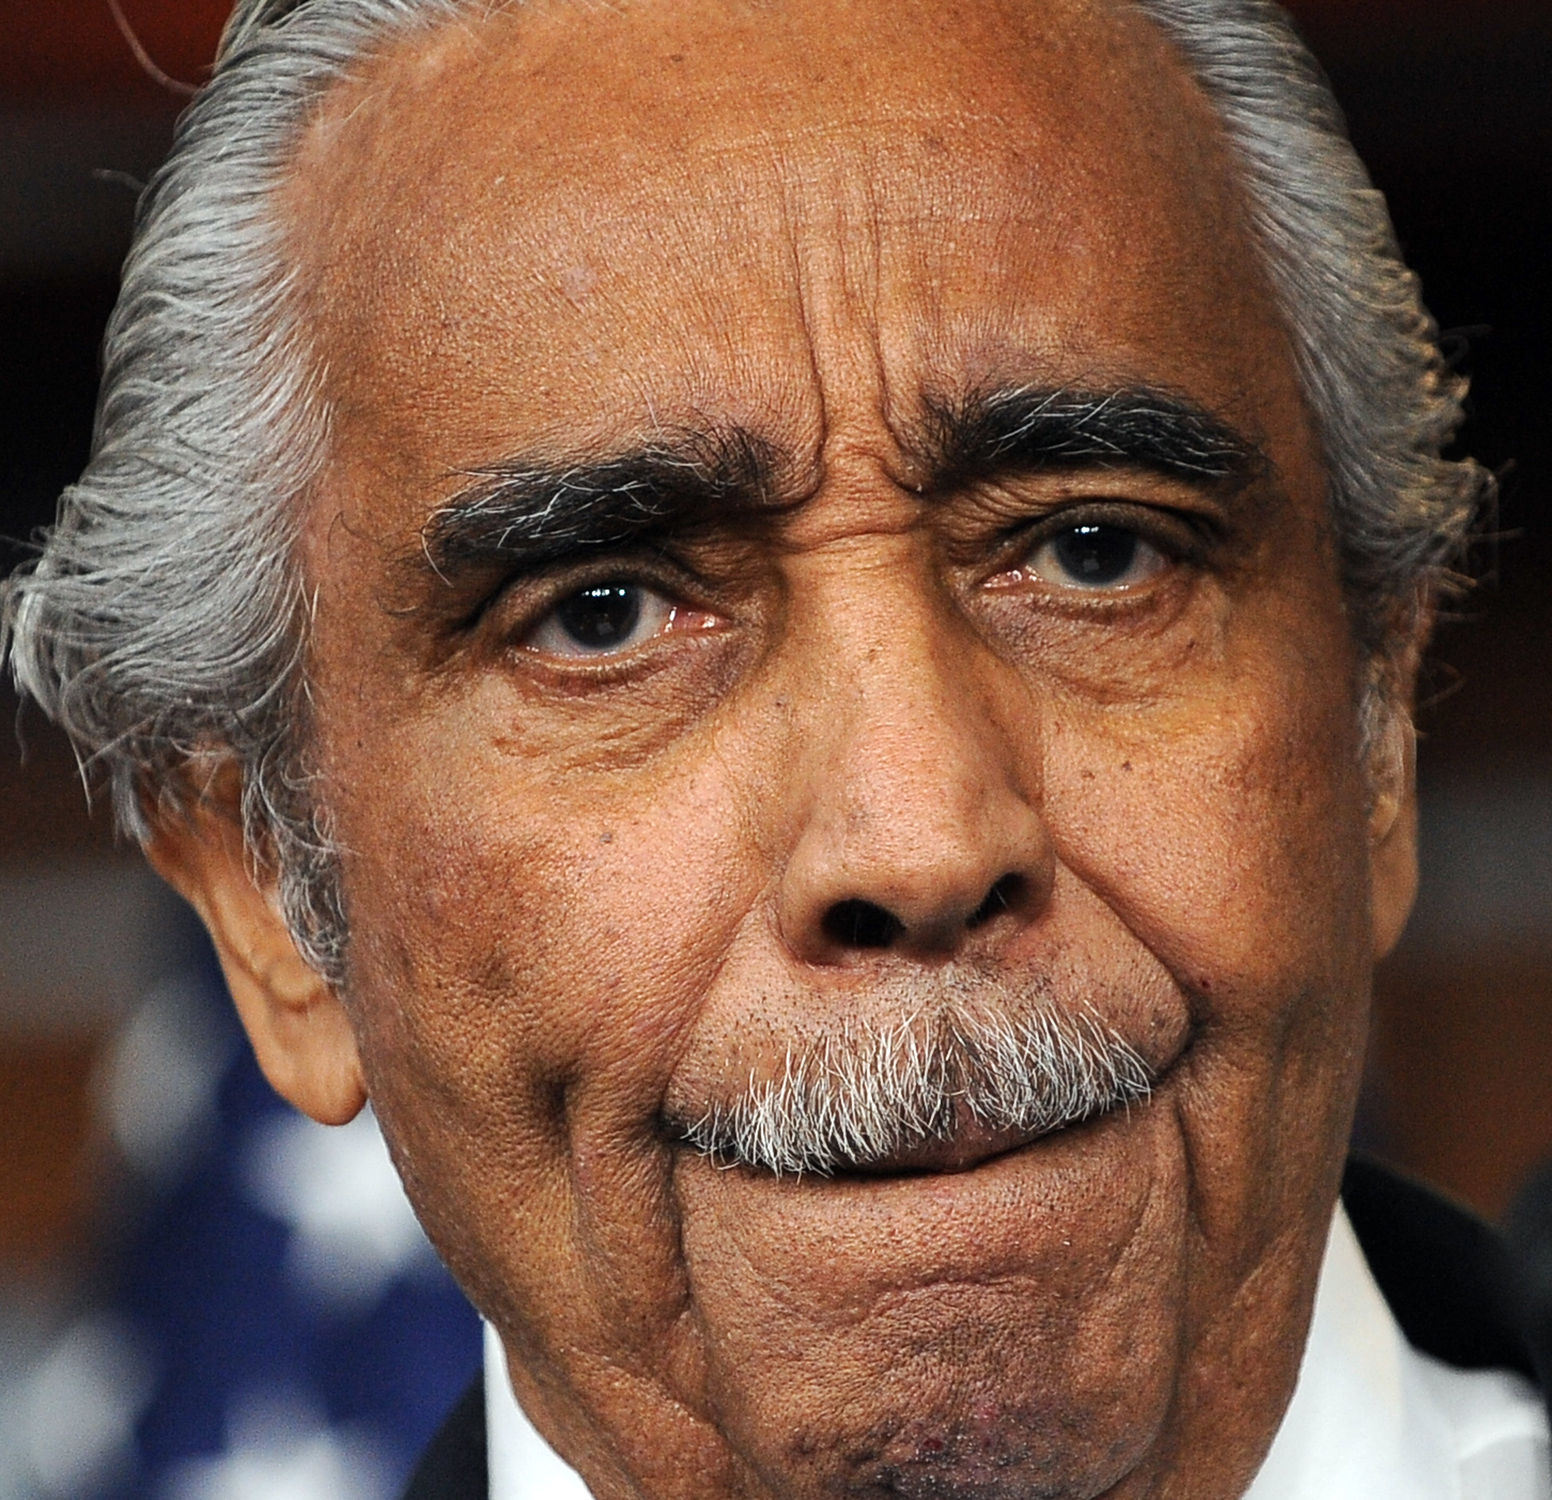 Rep. Charlie Rangel, D-NY, speaks to the media after the House of Representatives voted to censure him on Capitol Hill in Washington on December 2, 2010. UPI/Roger L. Wollenberg